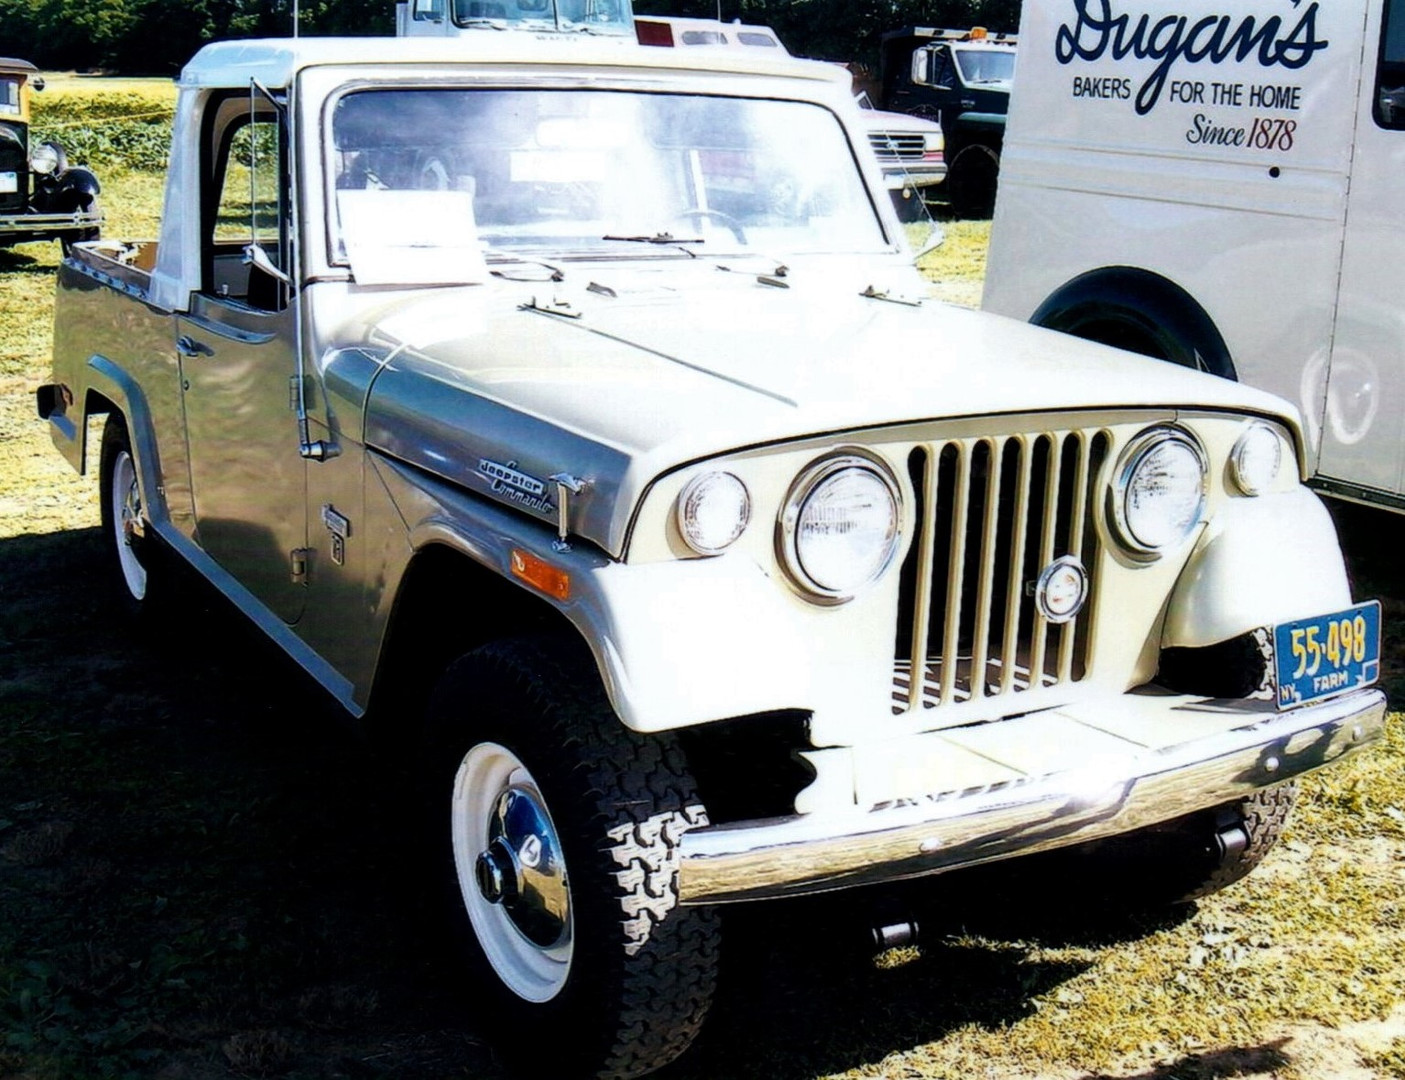 1971 Willys Jeepster Commando 1/2 top